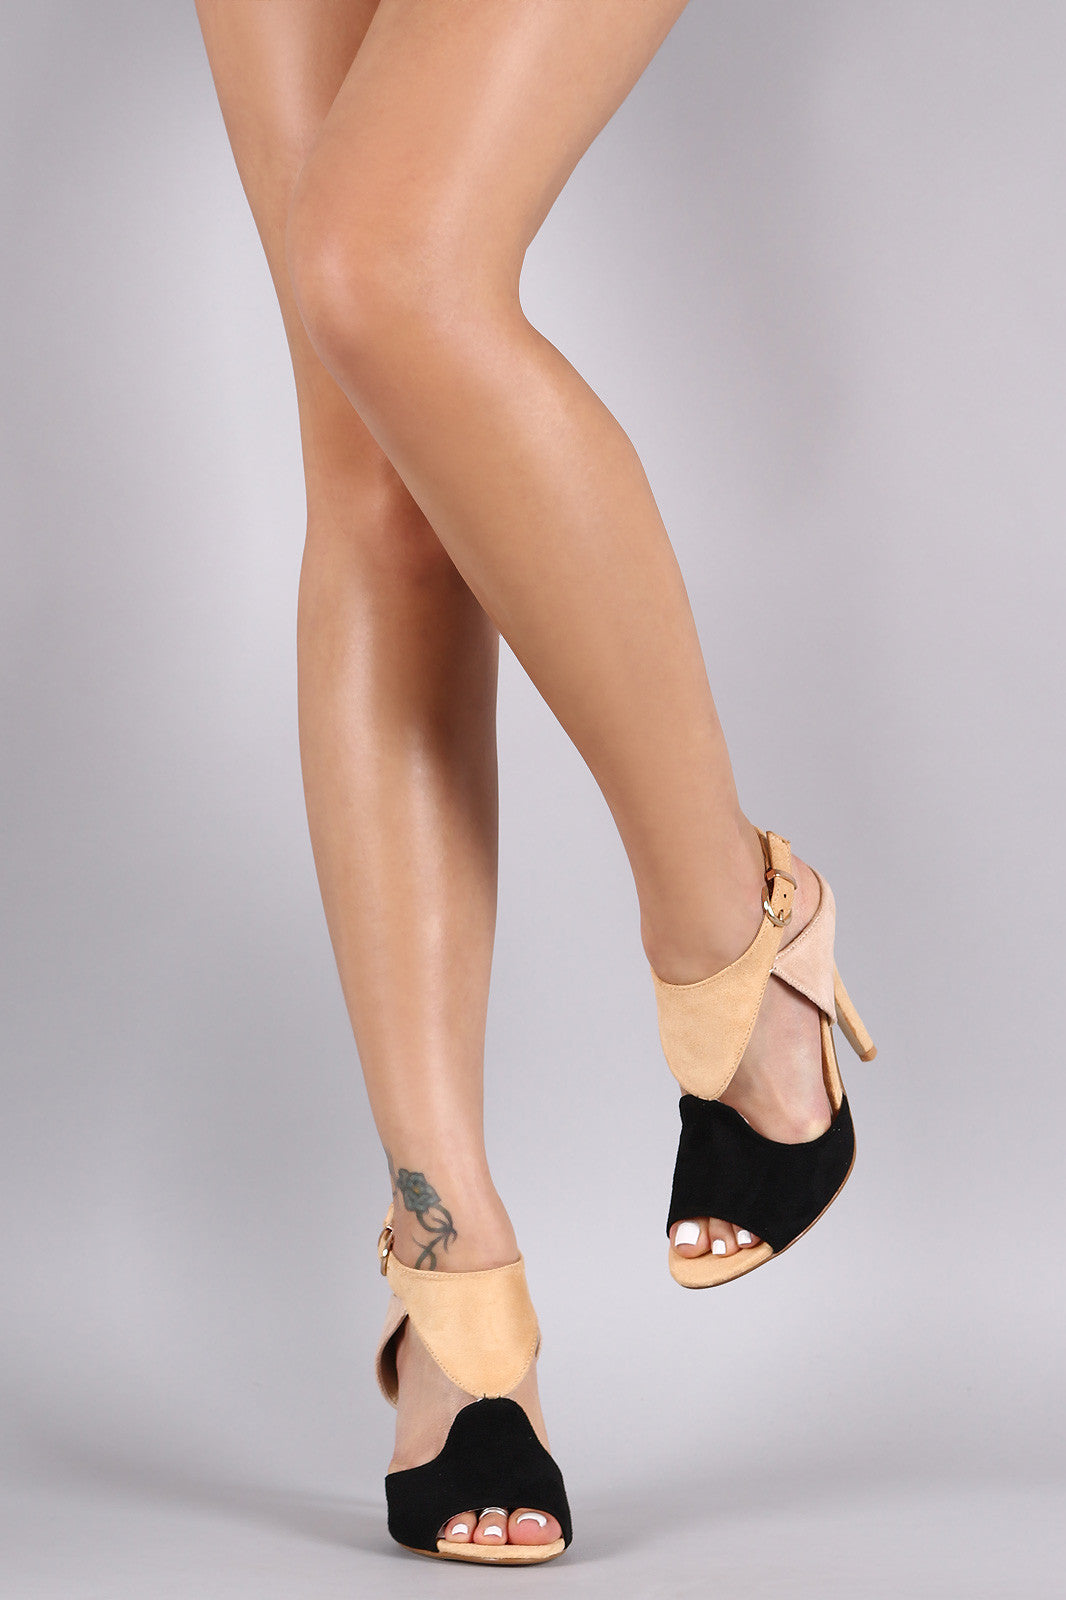 Cutout Block Color Peep Toe Stiletto Heel - Thick 'N' Curvy Shop - 2